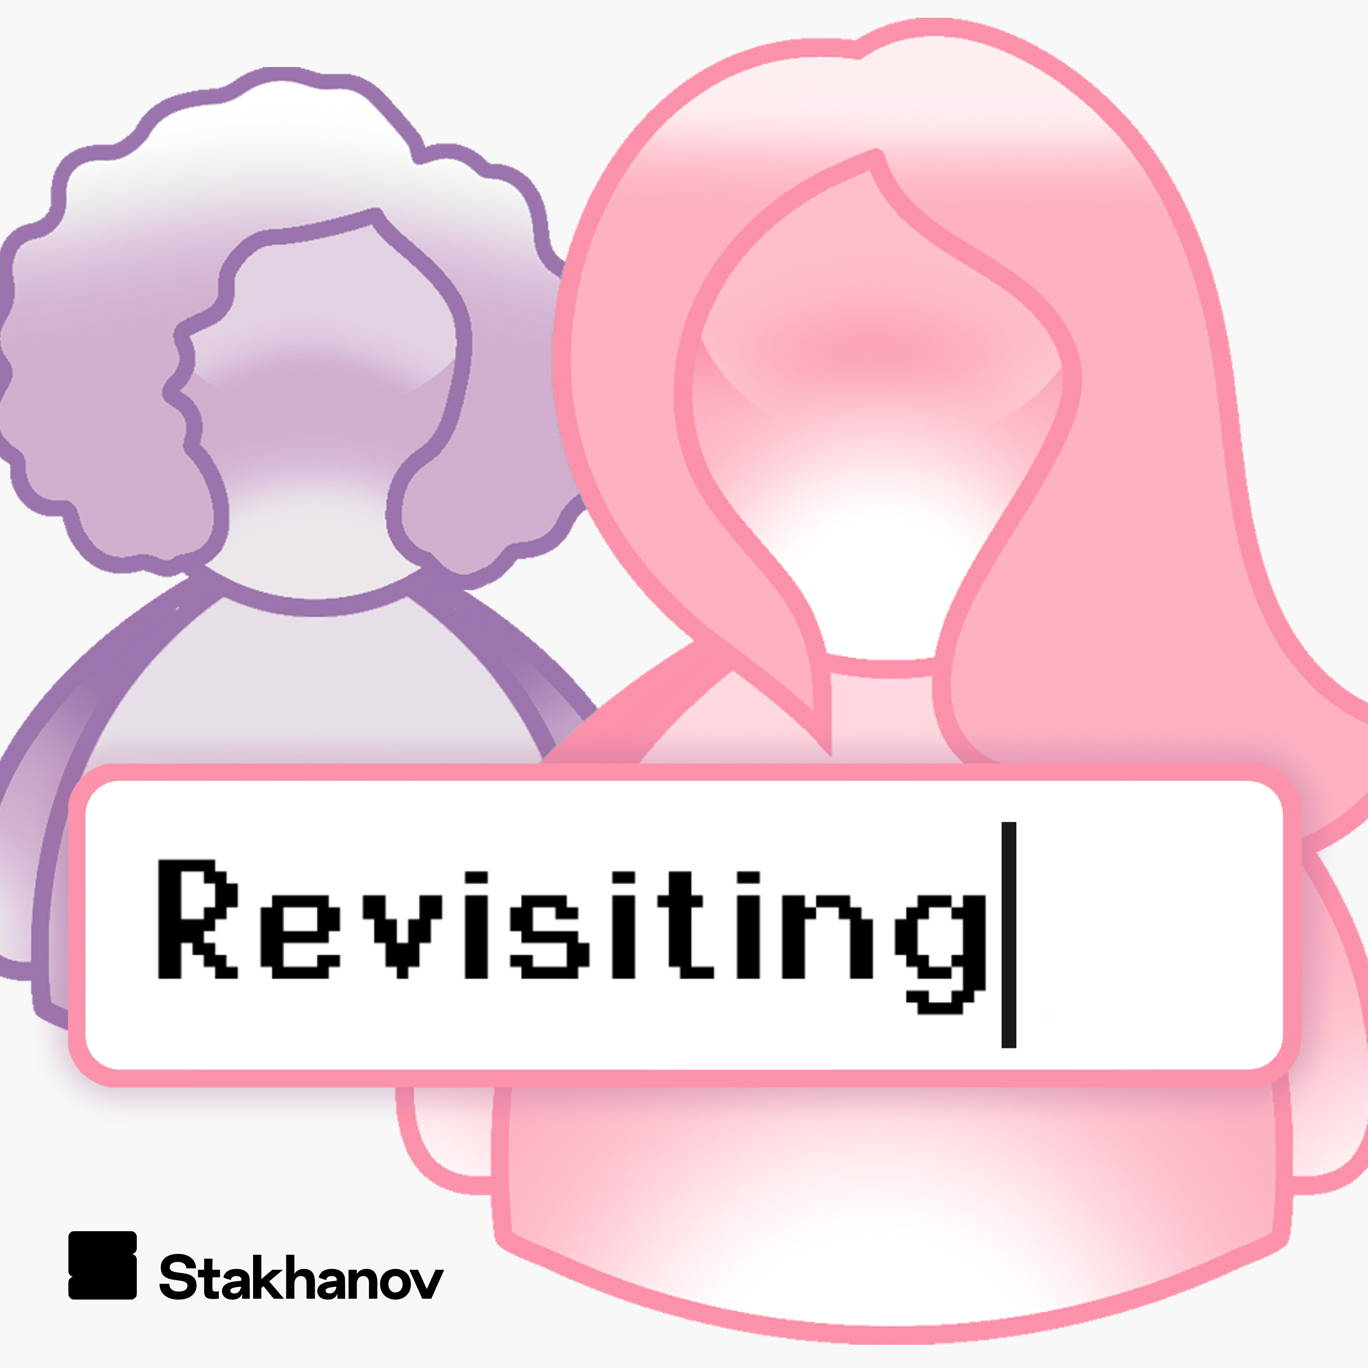 The artwork for the Revisiting podcast.